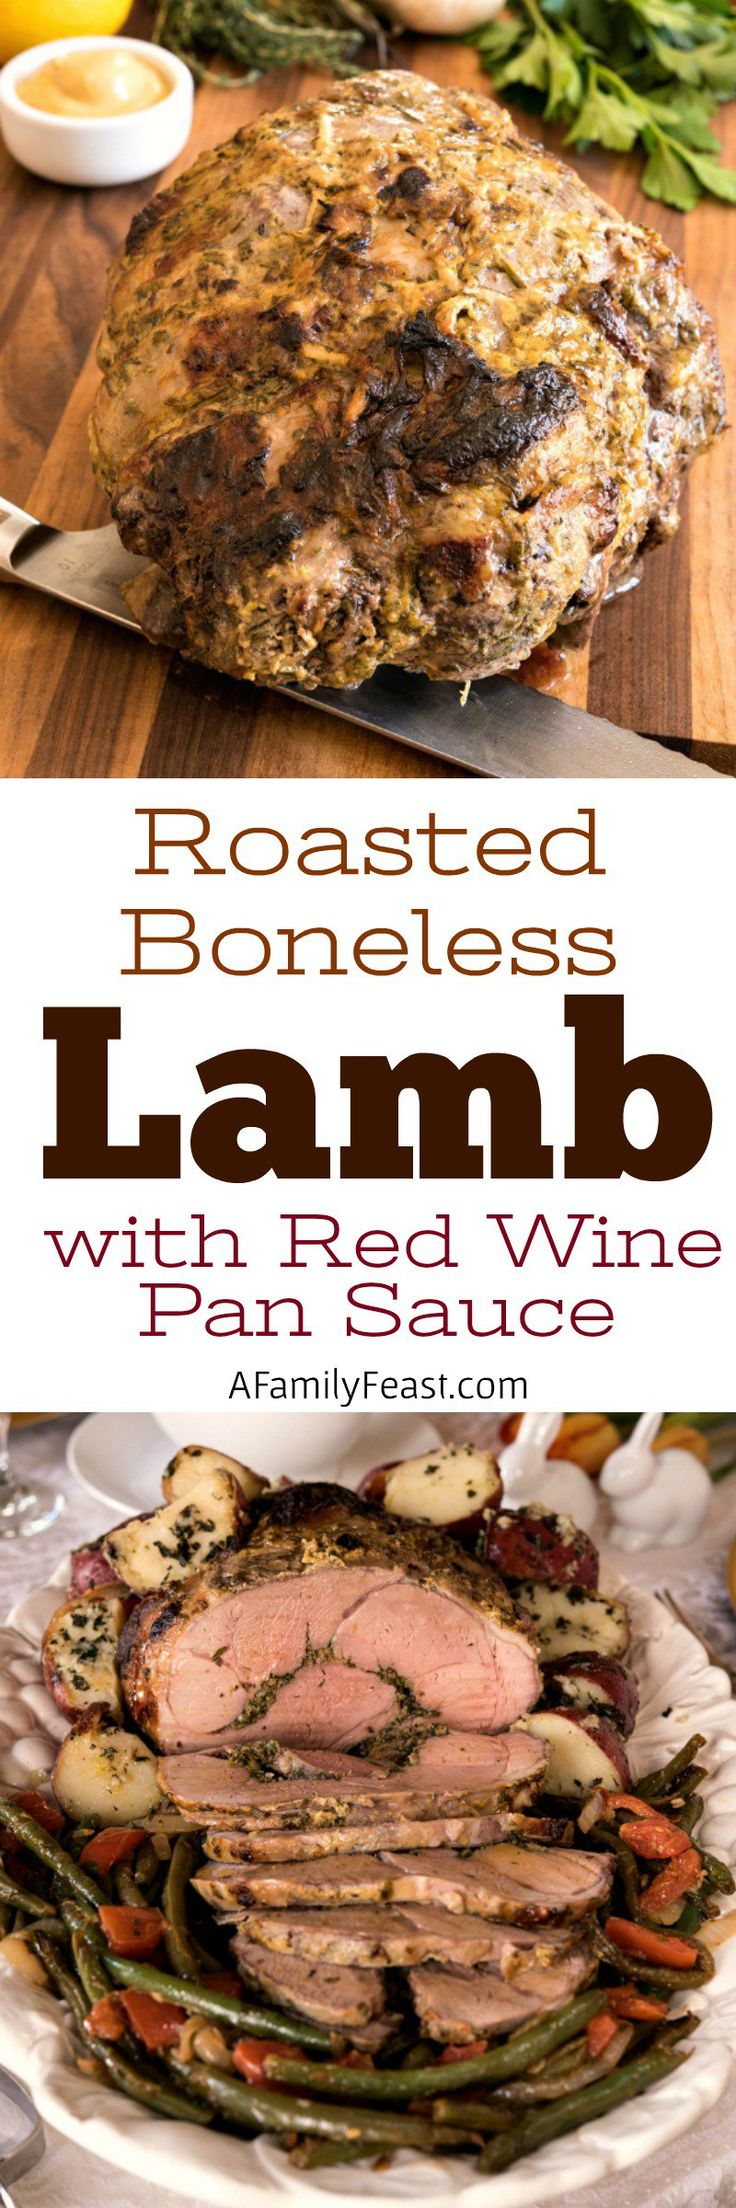 Boneless Roasted Lamb with Red Wine Pan Sauce - A classic Easter main dish. Boneless leg of lamb stuffed with herbs and lemon.